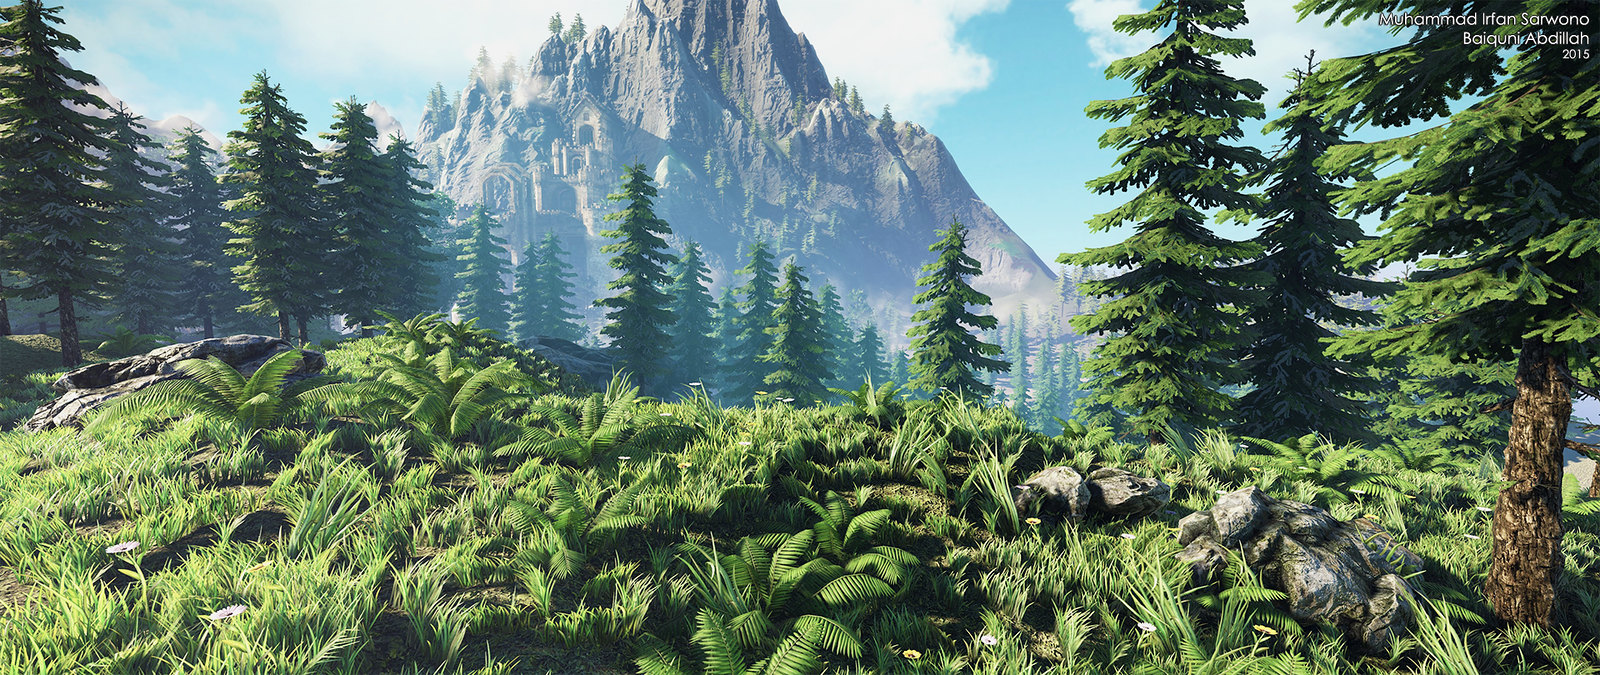 Download 90 Background Animasi Hutan Gratis Terbaik